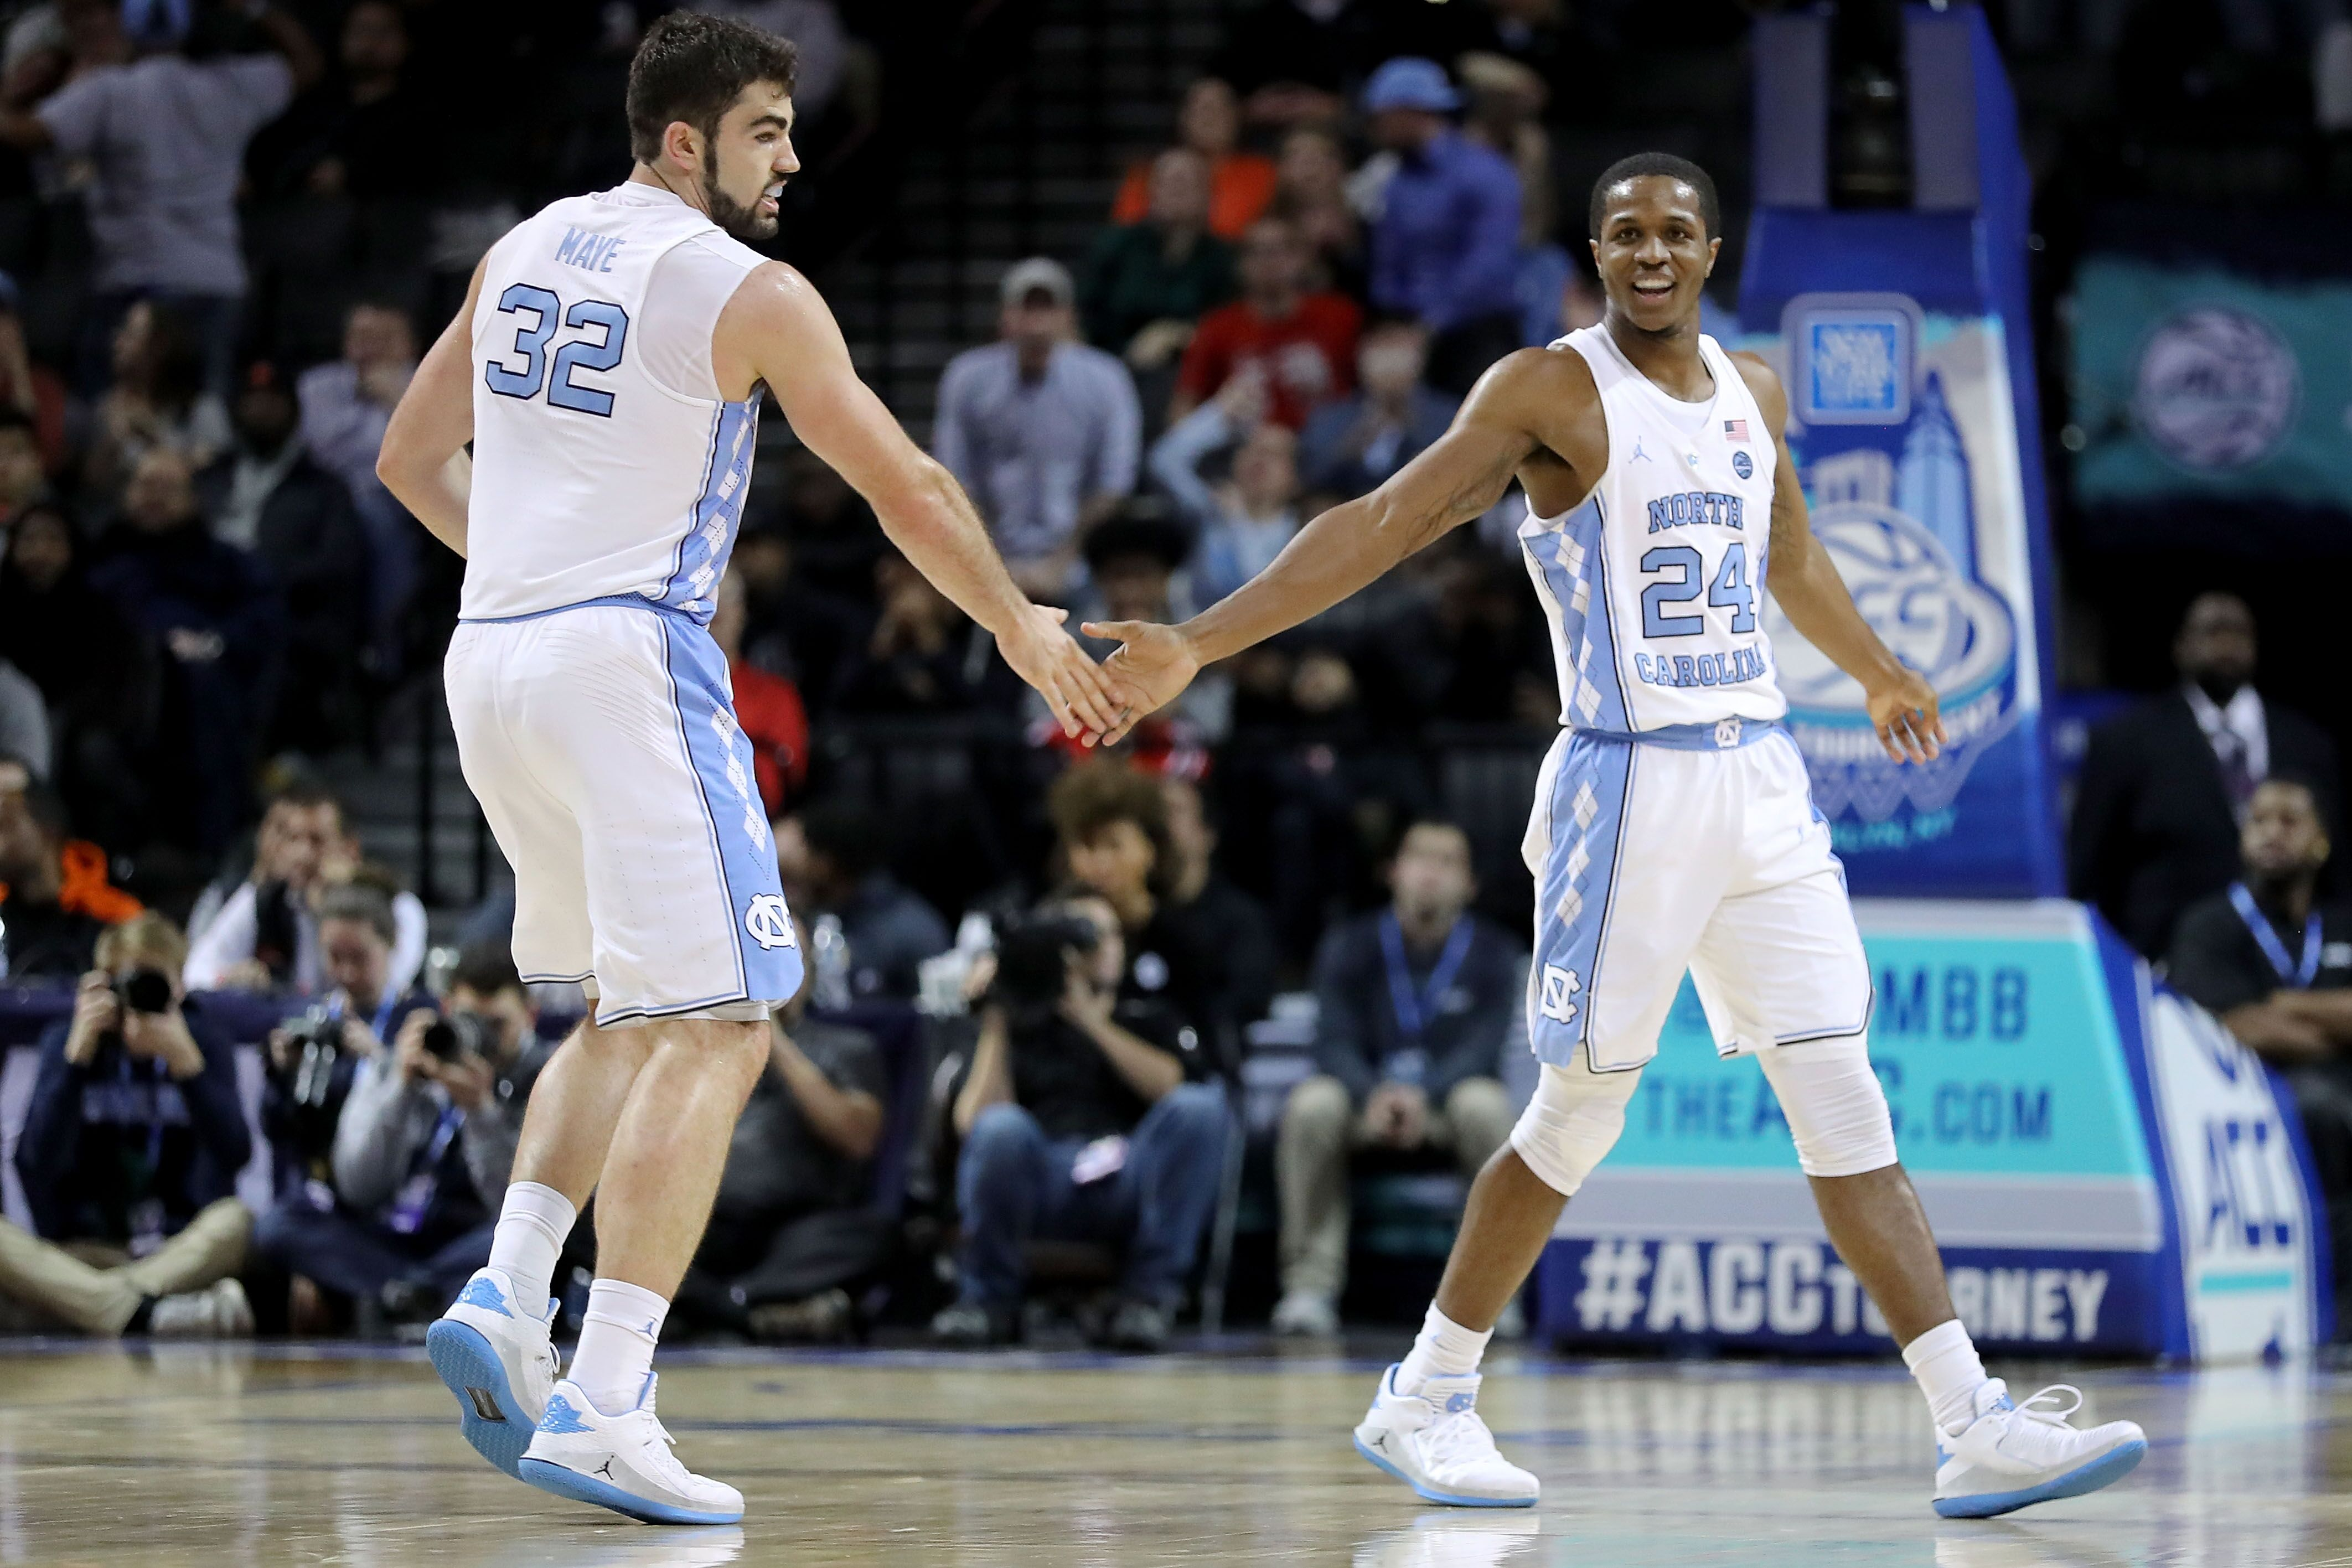 Unc Basketball 2018 19 Acc Basketball Schedule Released